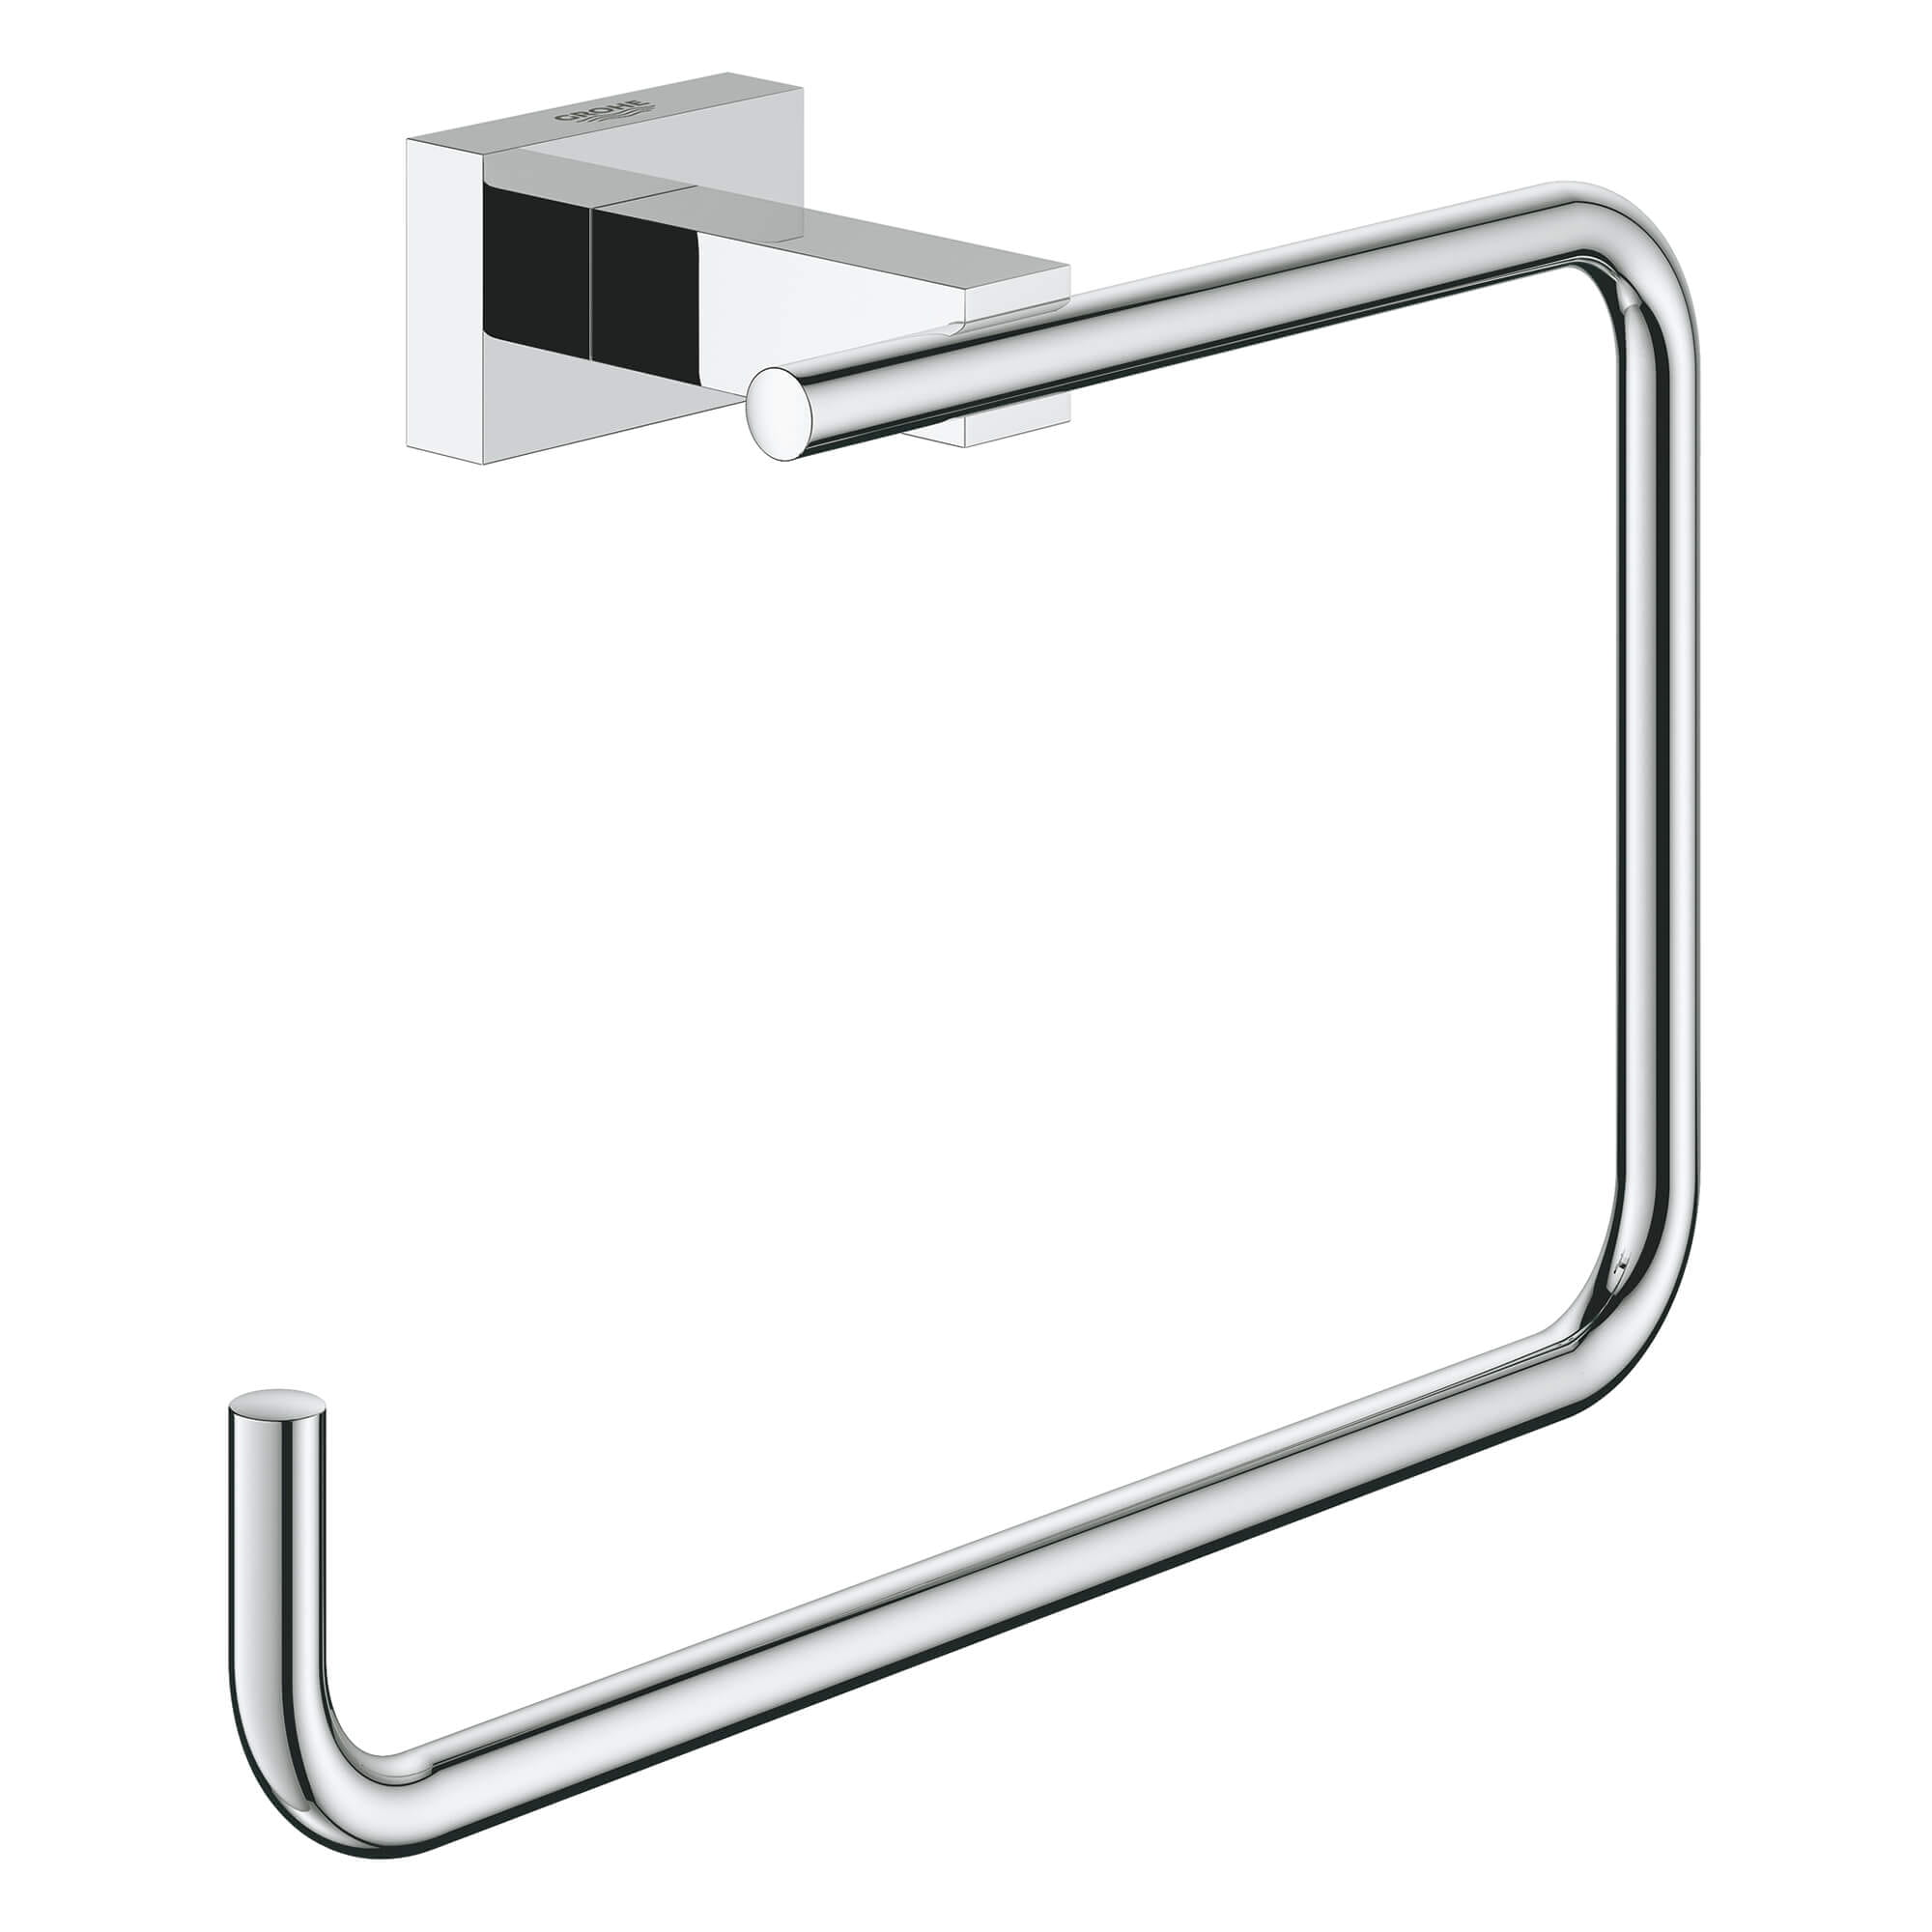 Essentials Cube Anneau porte serviette GROHE CHROME